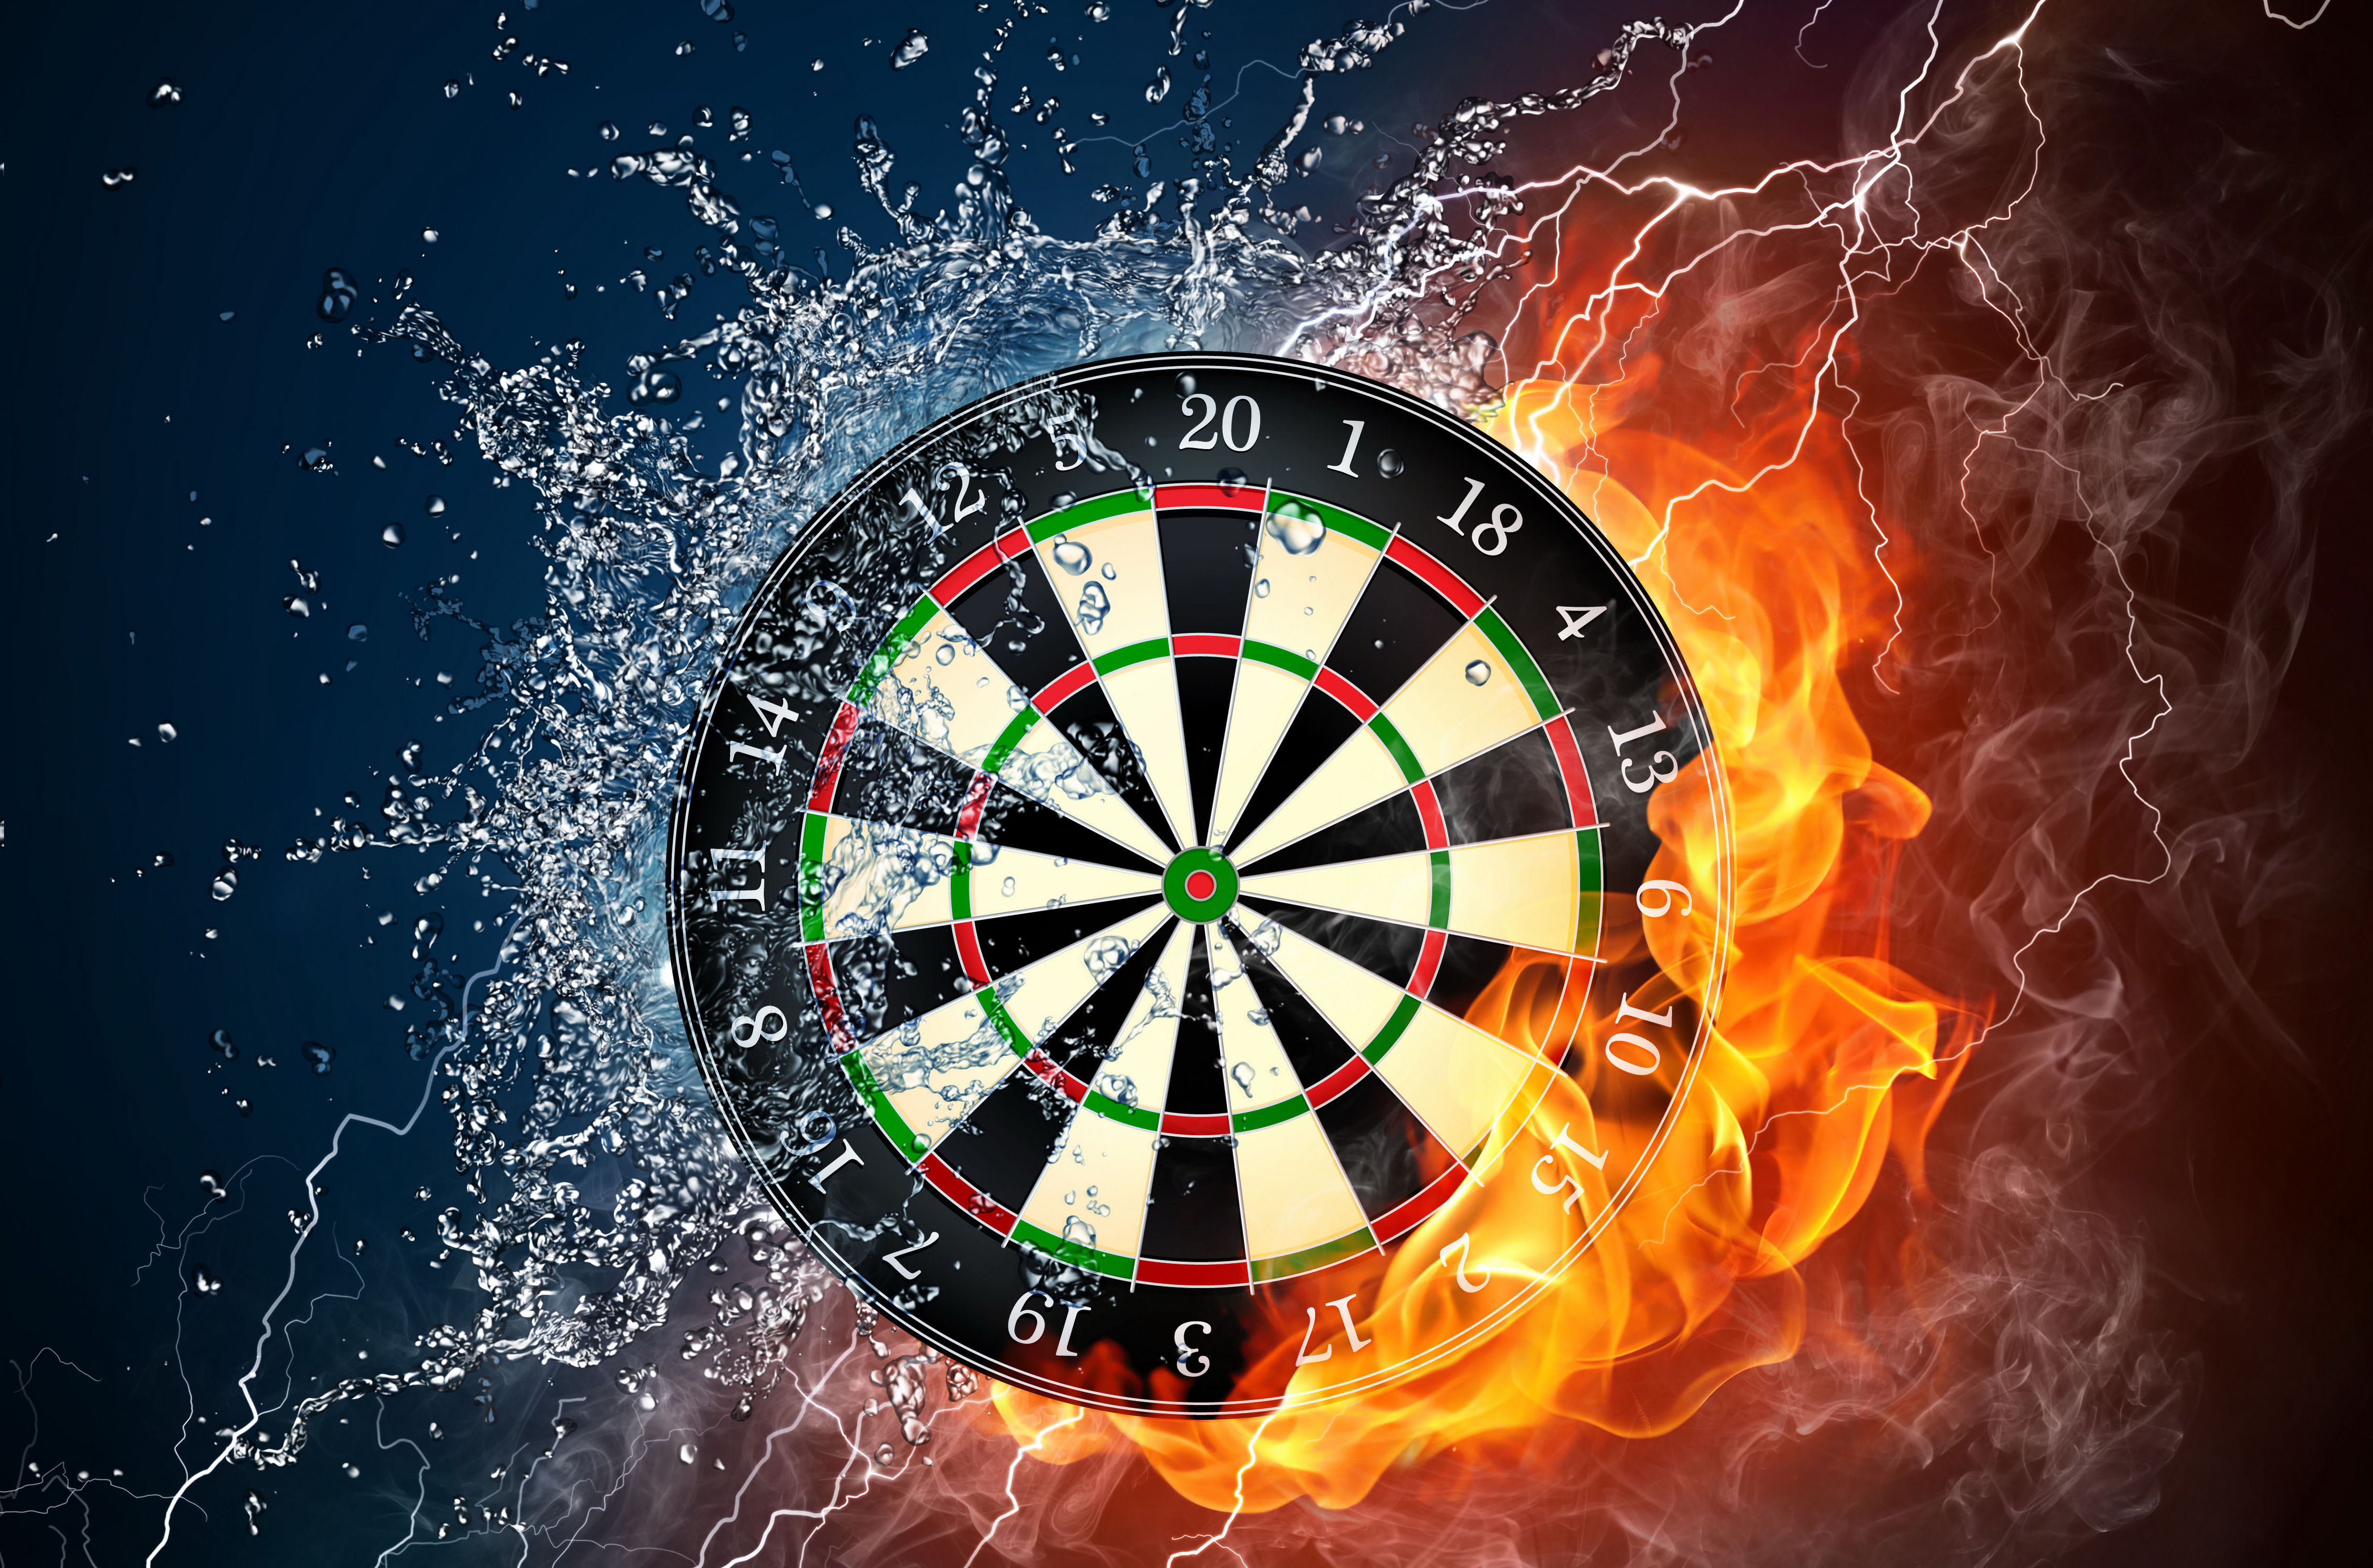 27 darts hd wallpapers backgrounds wallpaper abyss Rated R Logo rated g logo wiki